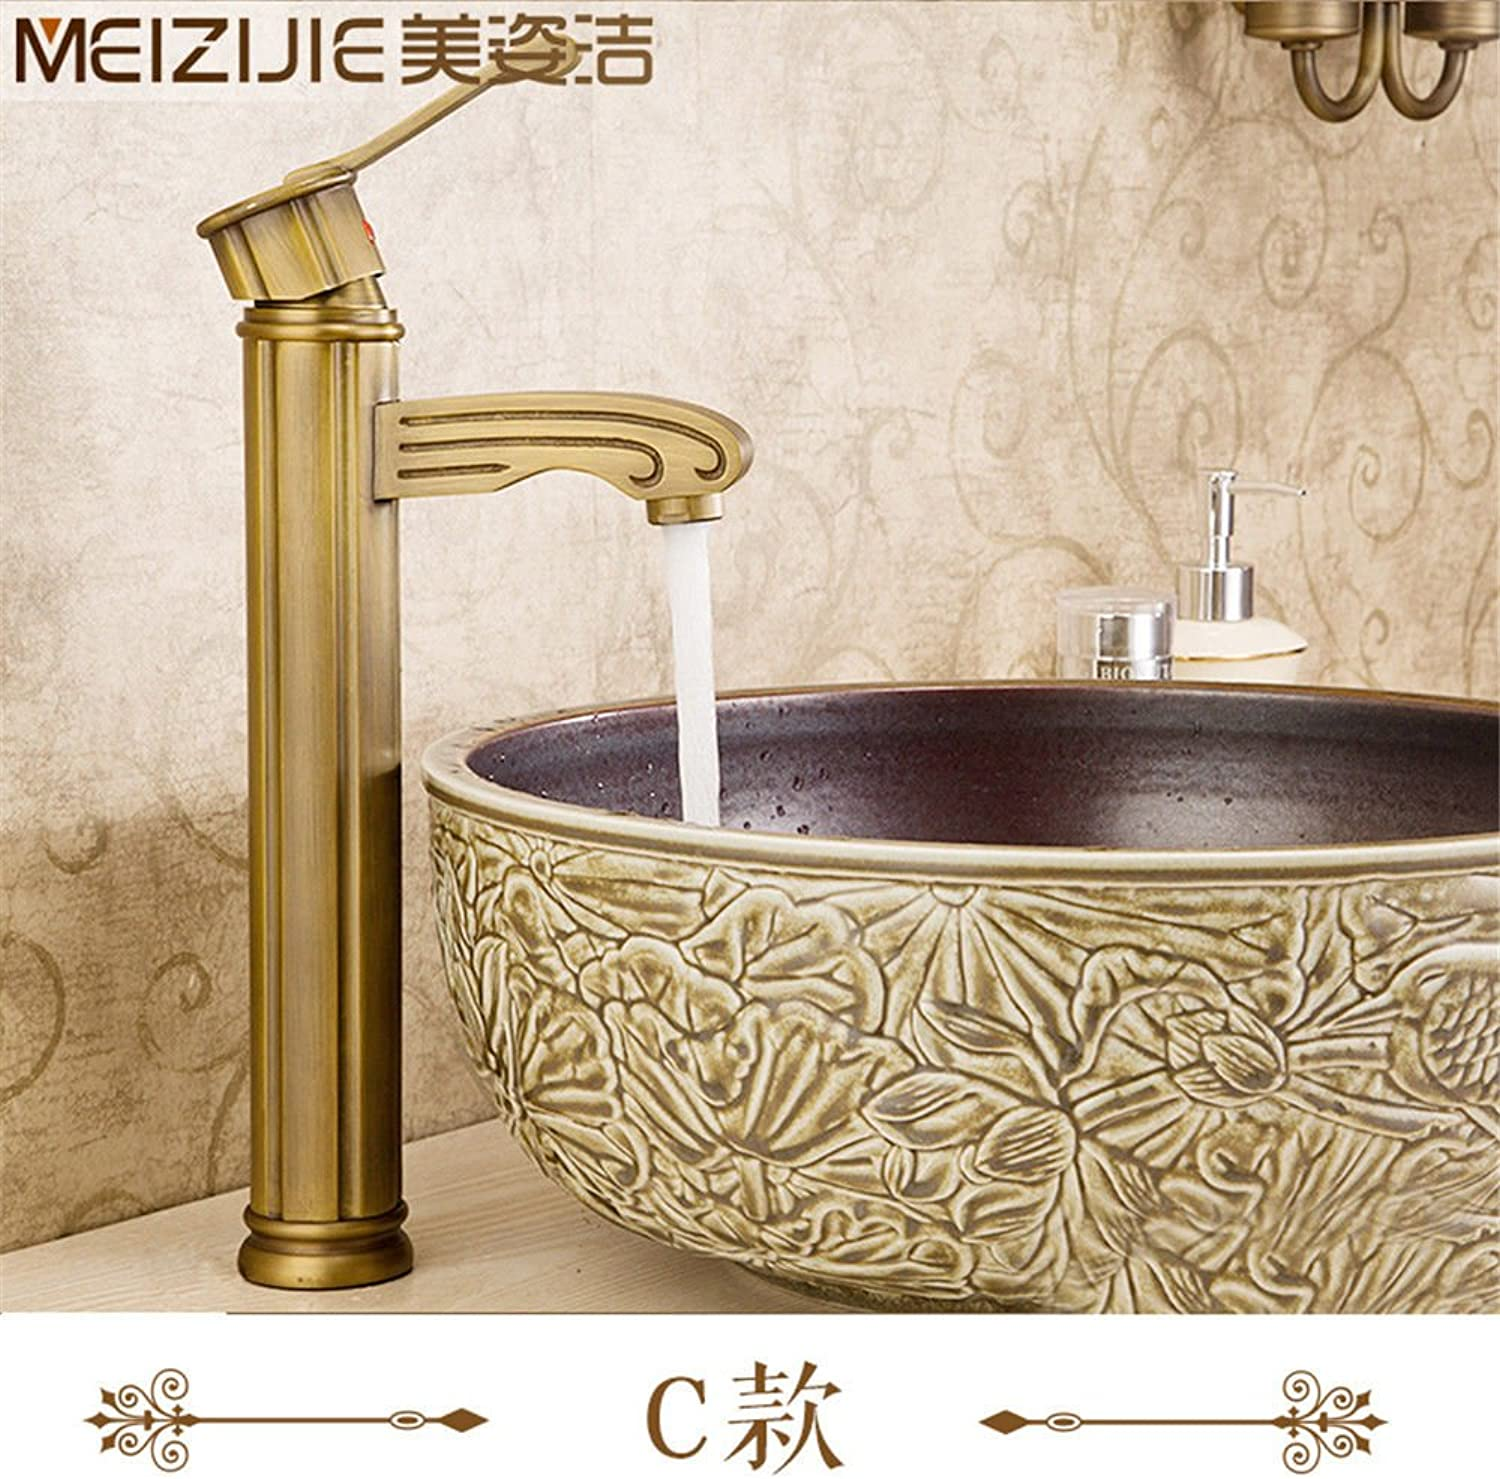 Lpophy Bathroom Sink Mixer Taps Faucet Bath Waterfall Cold and Hot Water Tap for Washroom Bathroom and Kitchen Copper Retro Hot and Cold Antique